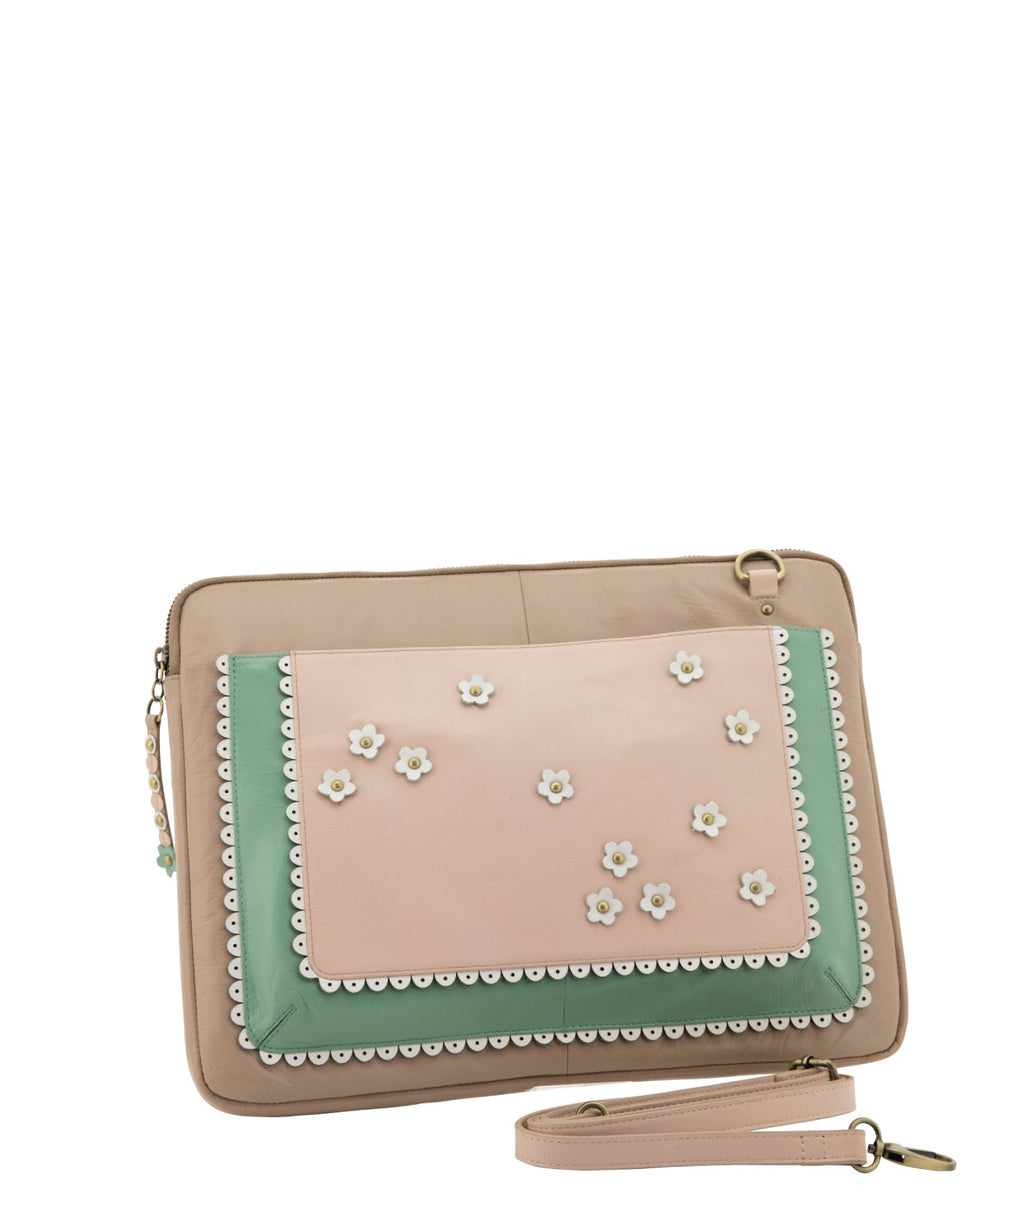 PEGGY Laptop Bag - Ballet Slipper